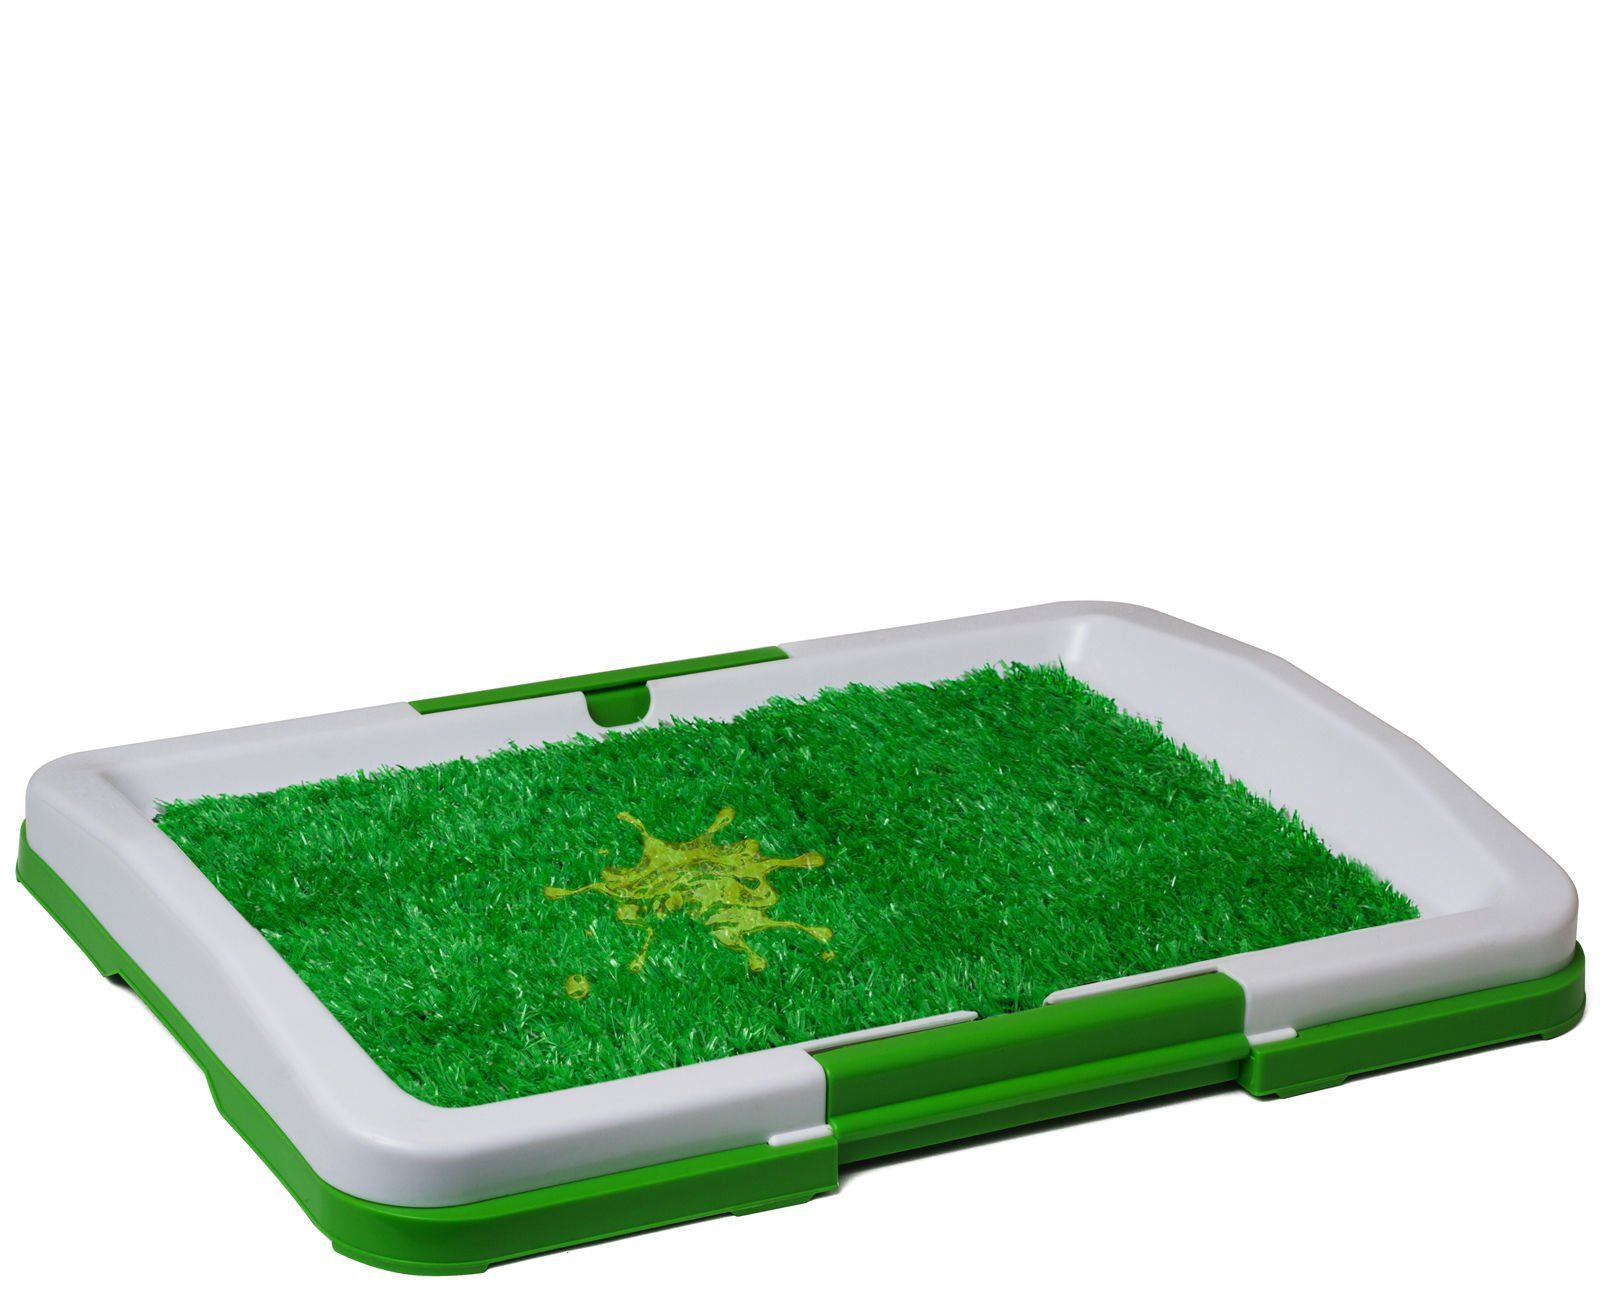 Dog Indoor Potty Trainer Grass Pee Pad for Pet Cat Puppy